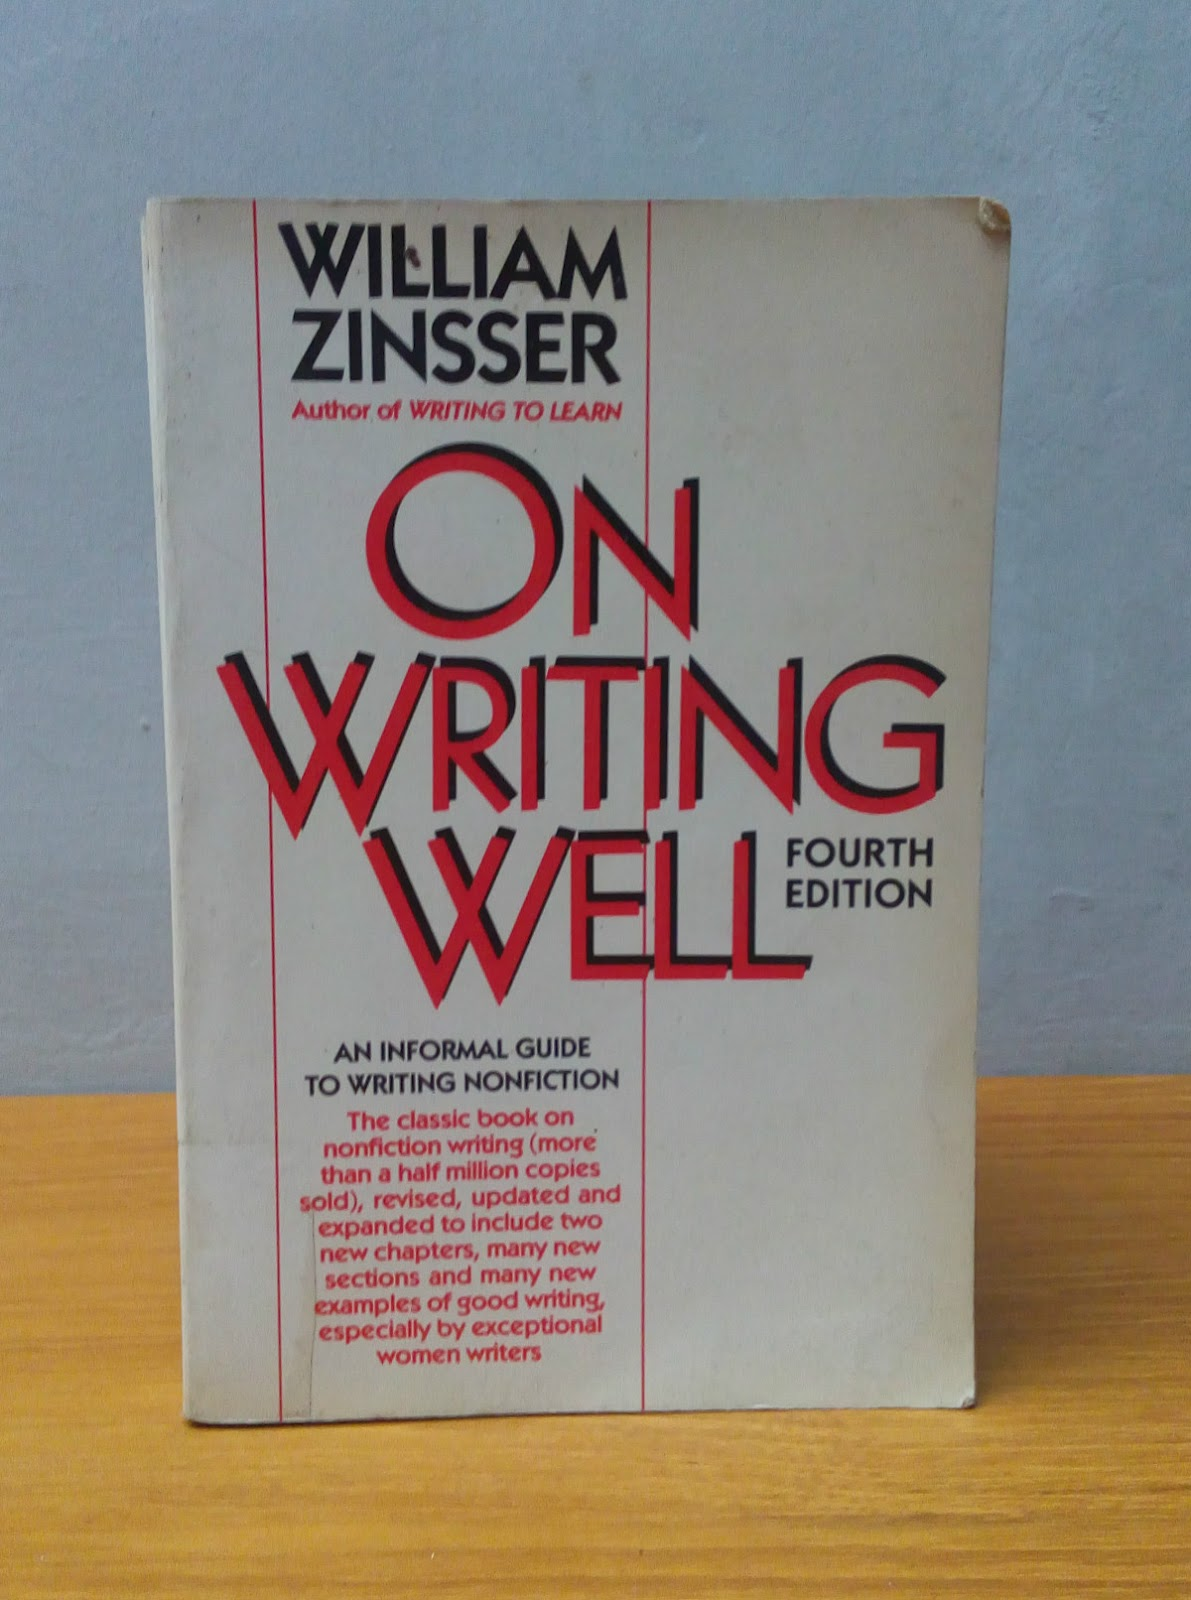 on writing well by william zinsser The american scholar ran william zinsser's weekly web posting, zinsser on friday, featuring his short essays on it would be william zinsser's on writing well.